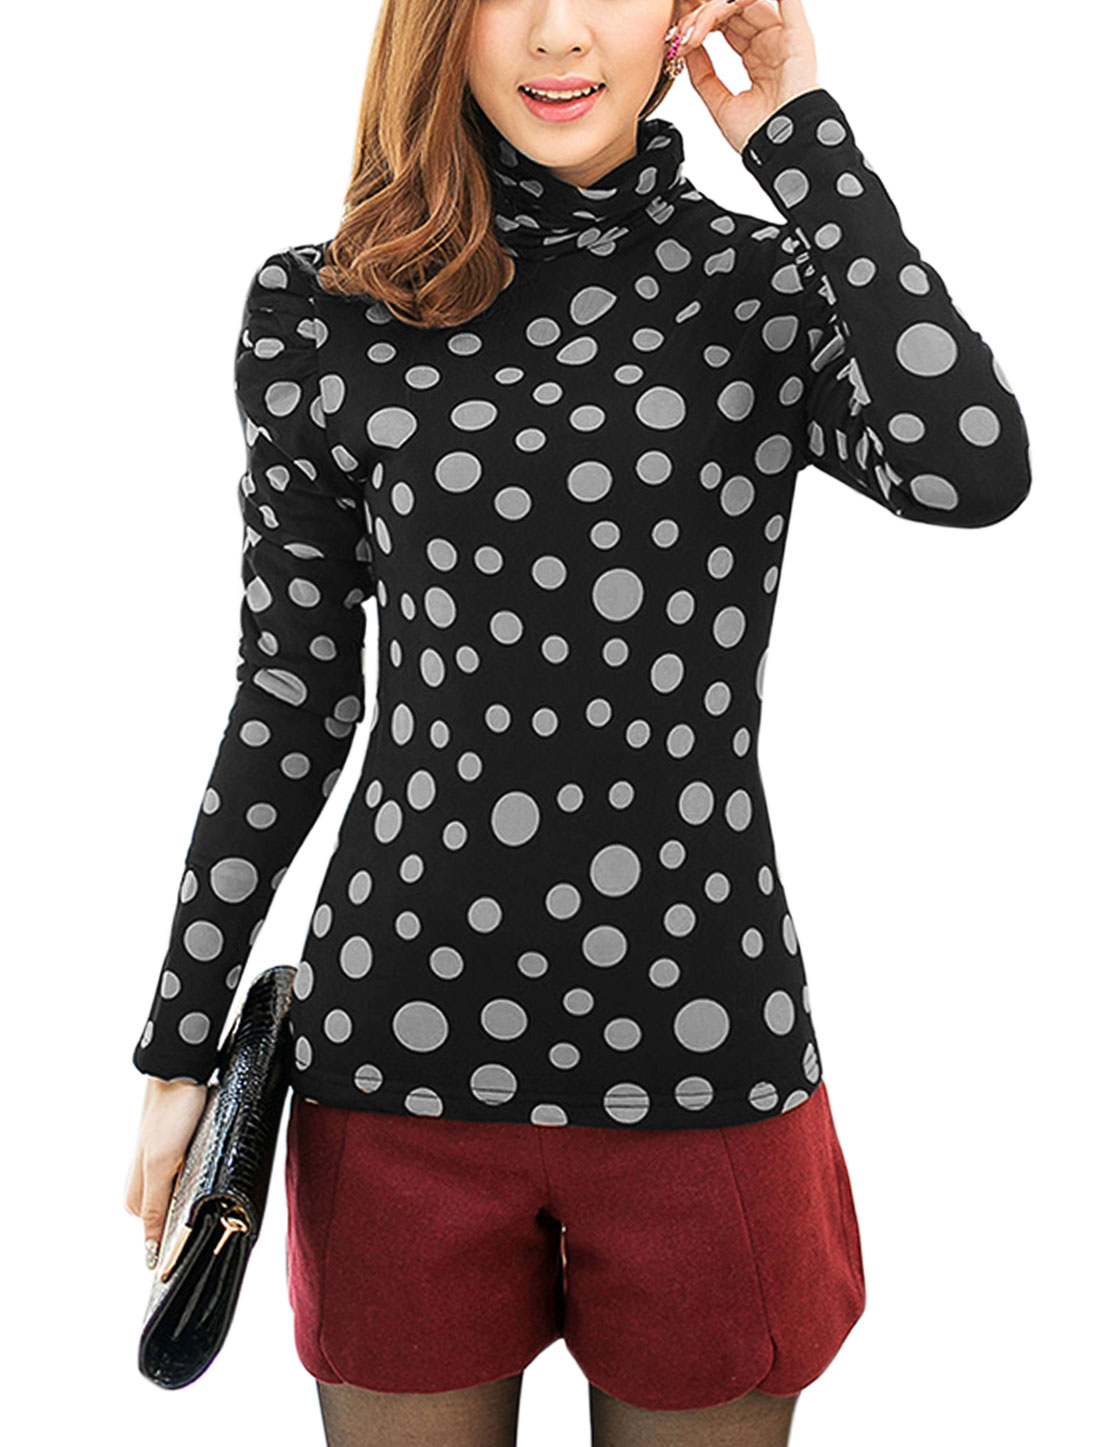 Lady Turtle Neck Dots Prints Casual Shirt White Black XS